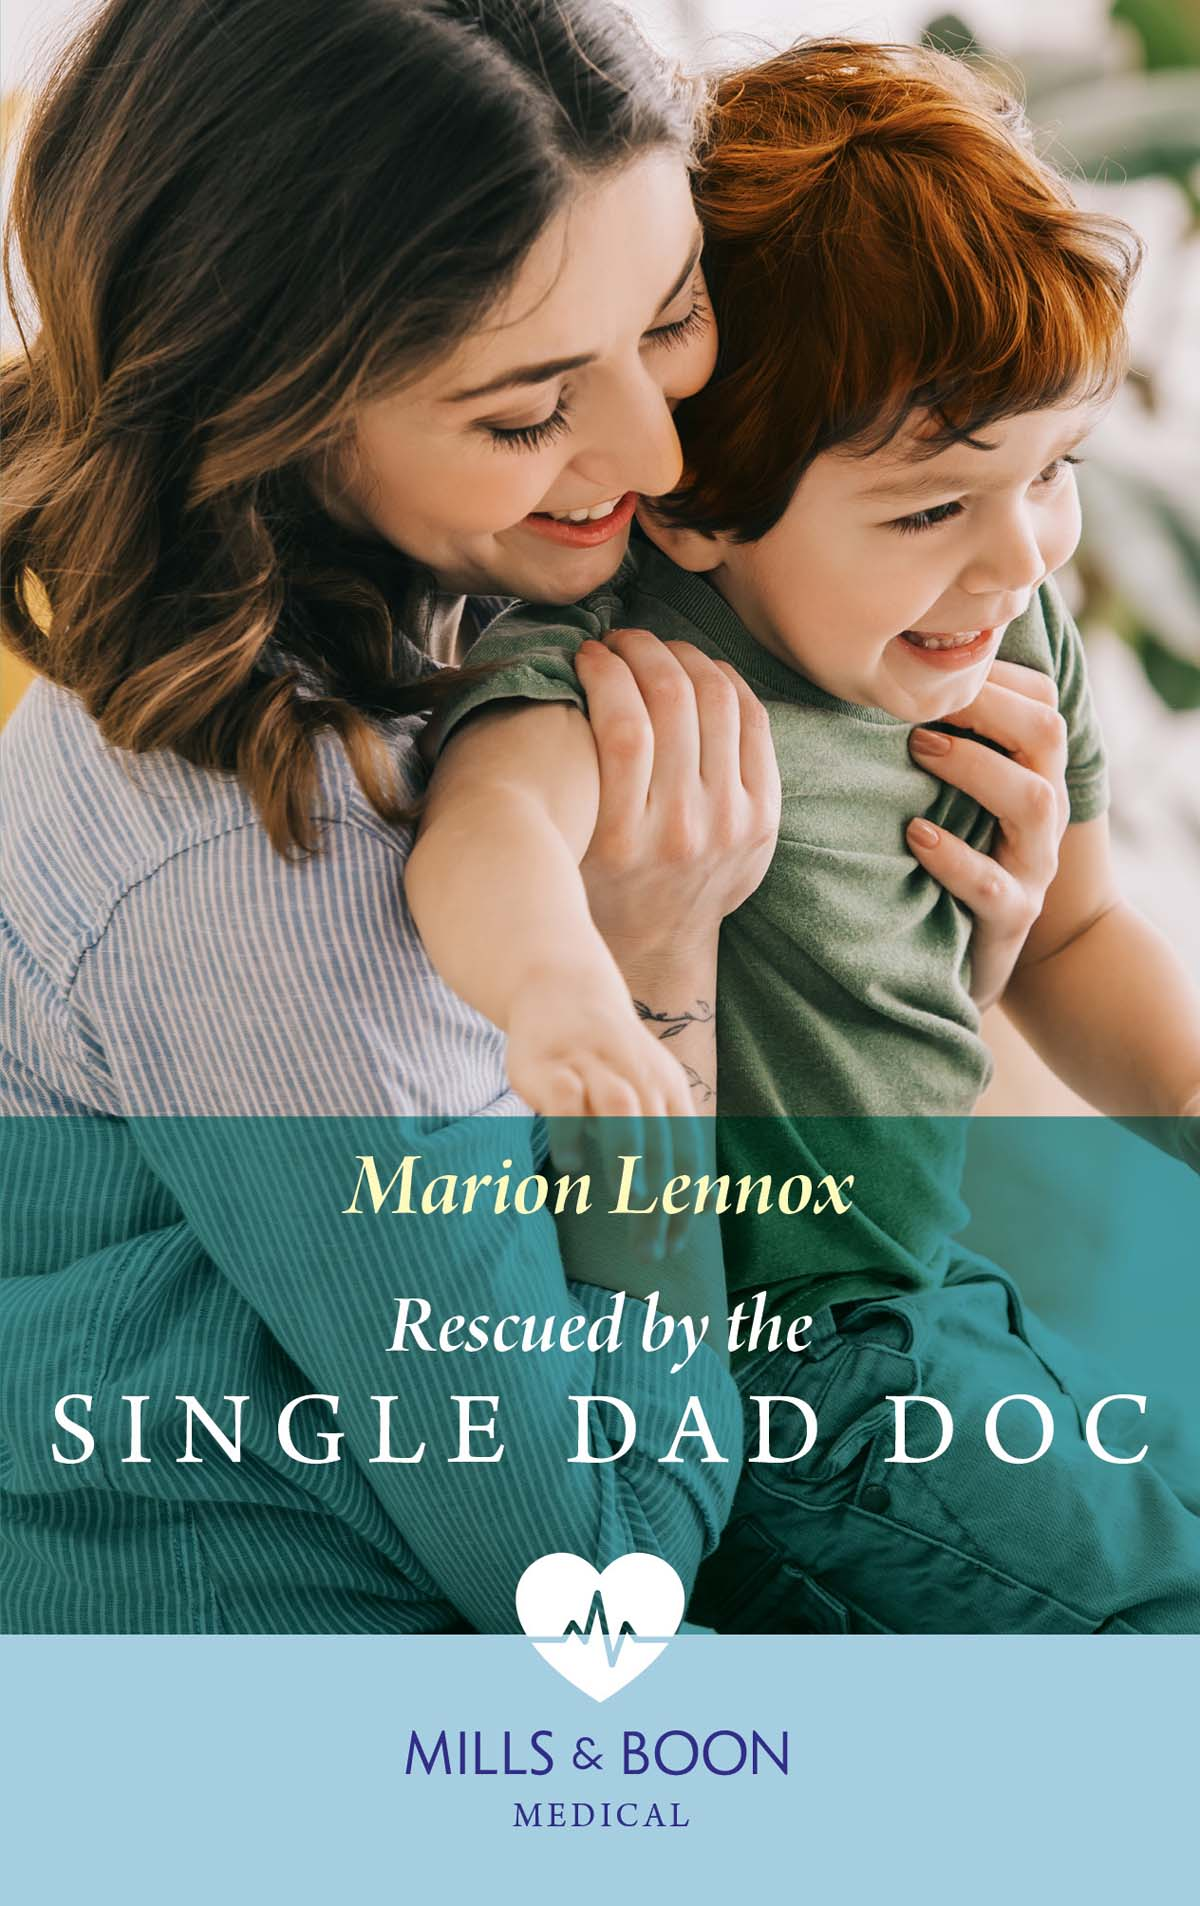 Marion Lennox Rescued By The Single Dad Doc rachel amphlett three lives down